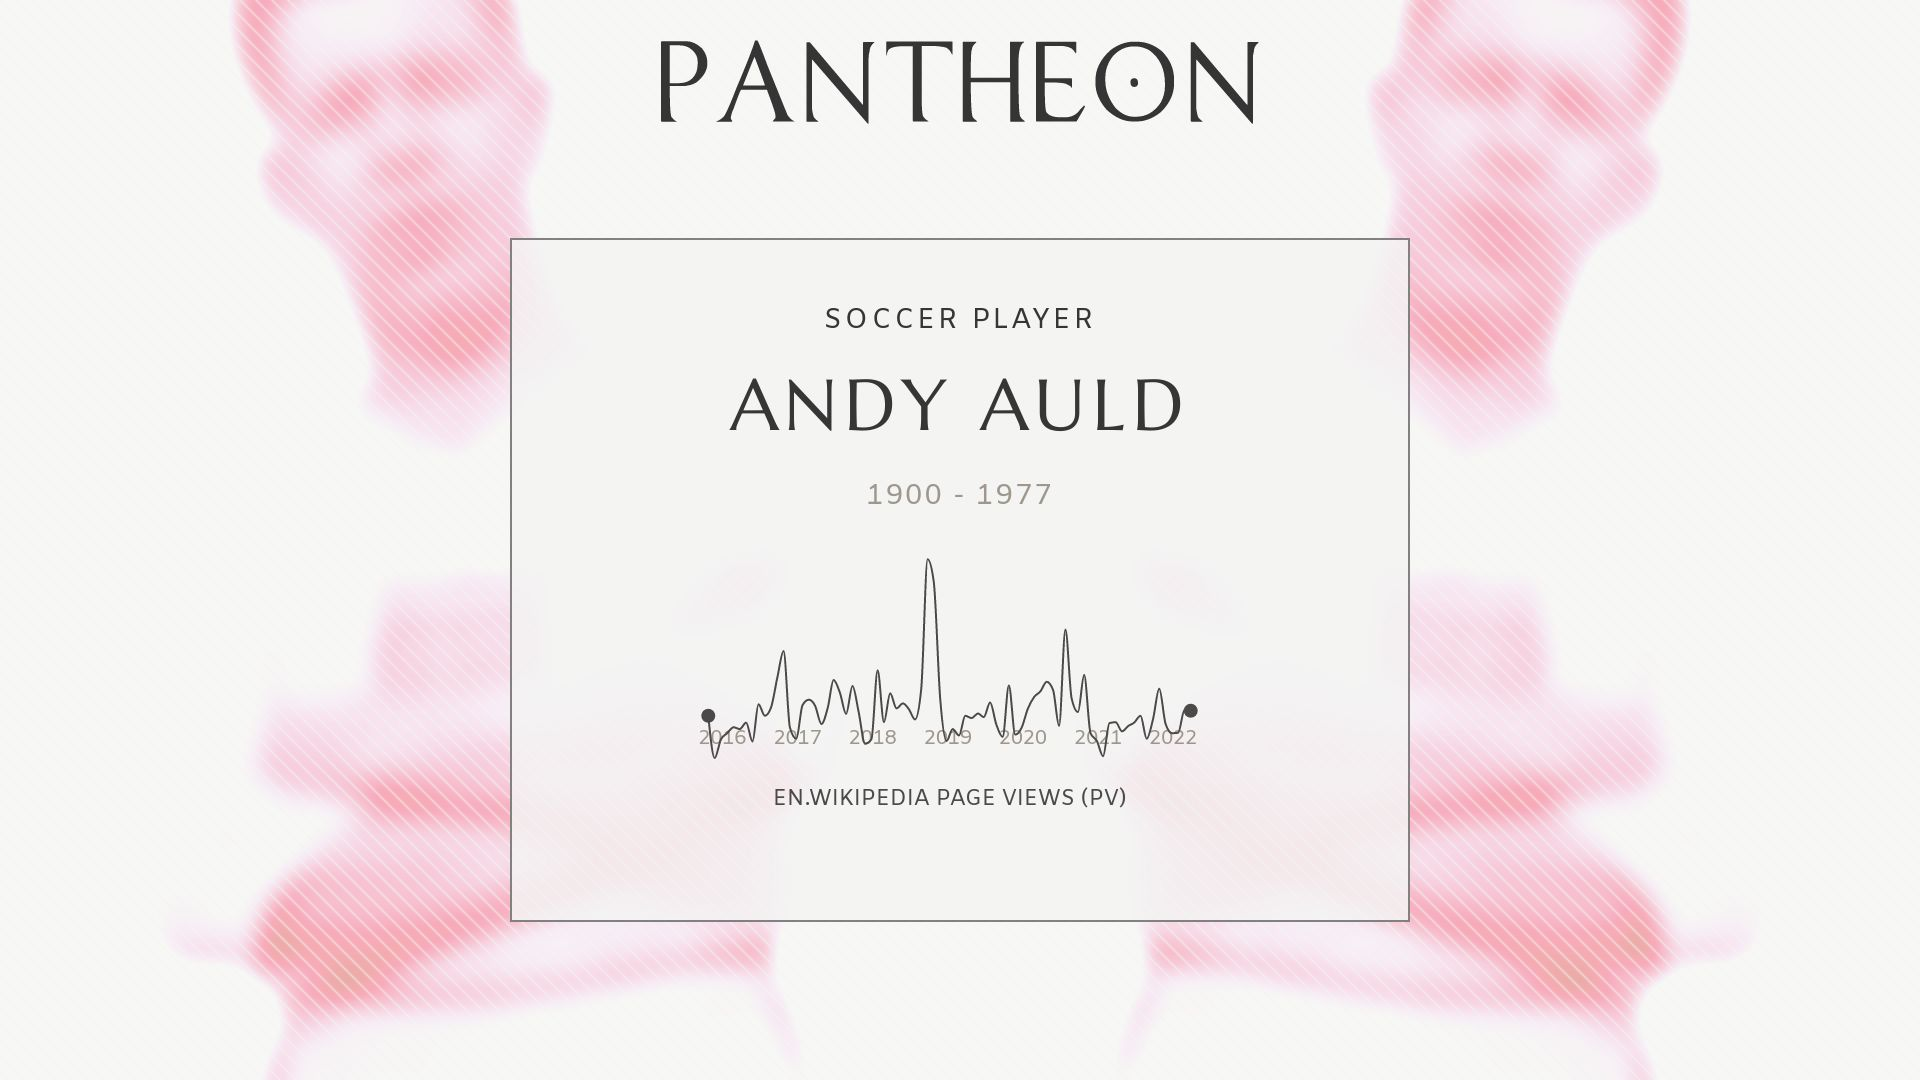 Andy Auld Biography American Soccer Player Pantheon